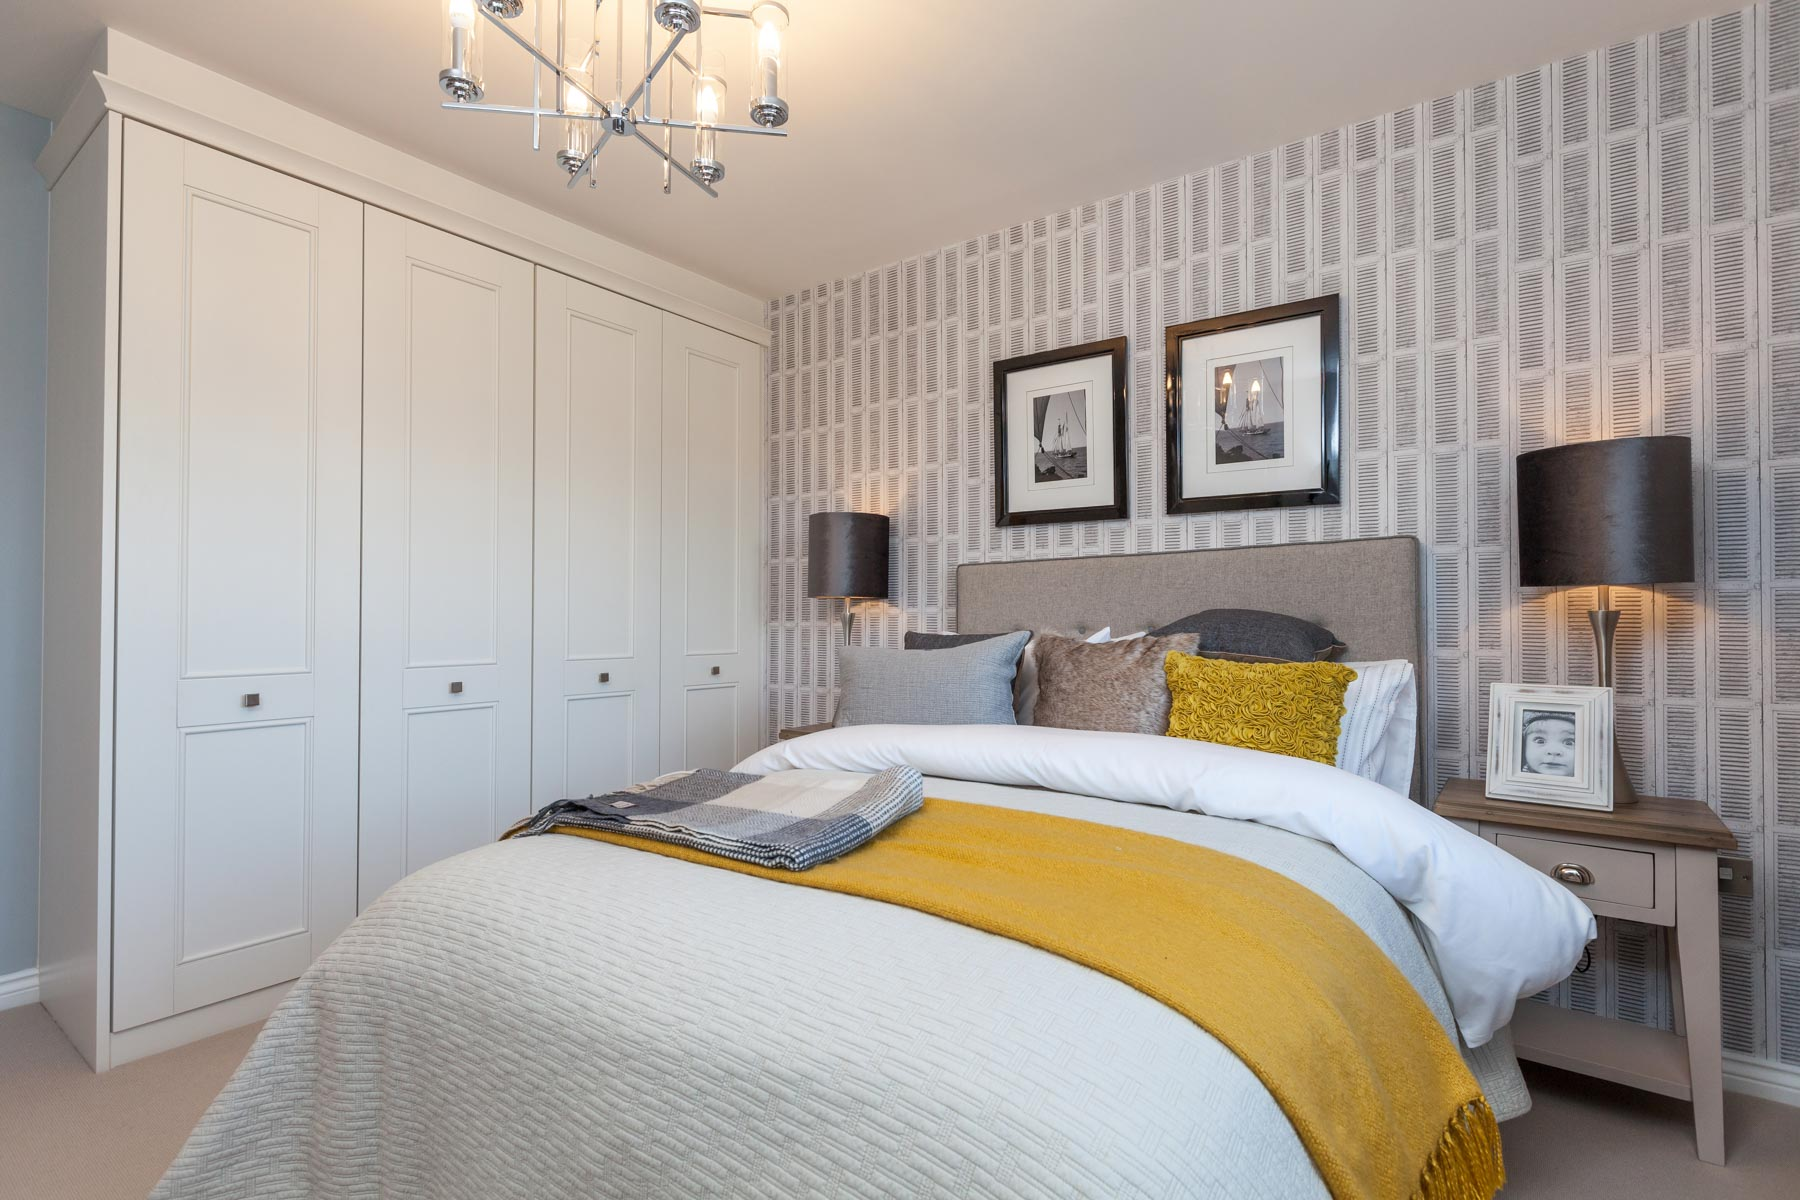 Taylor Wimpey Exeter - Cranbrook - Shelford example bedroom 2